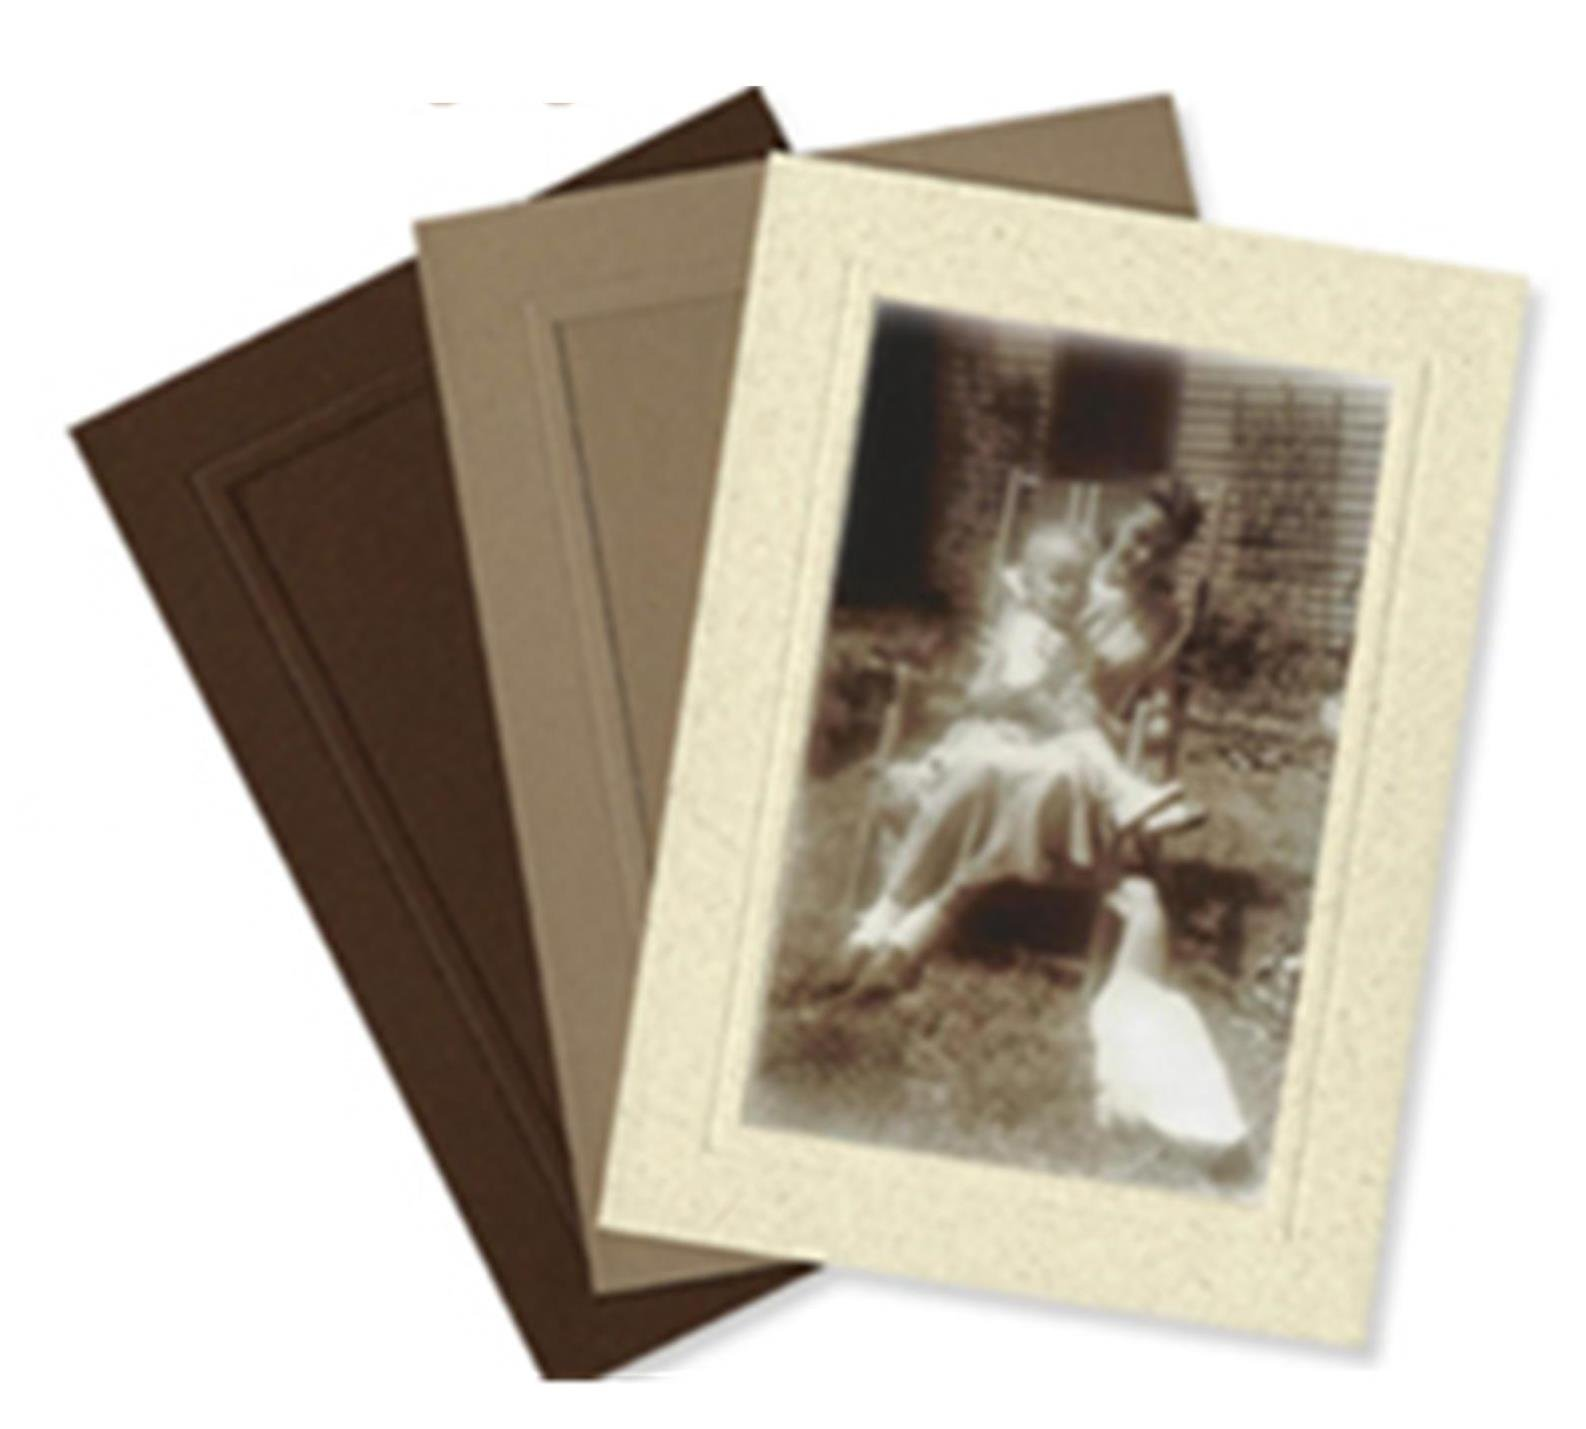 Coffee Collection 4x6 Photo Insert Note Cards - 24 Pack by Plymouth Cards (Made from Recycled Coffee Bean Bags)